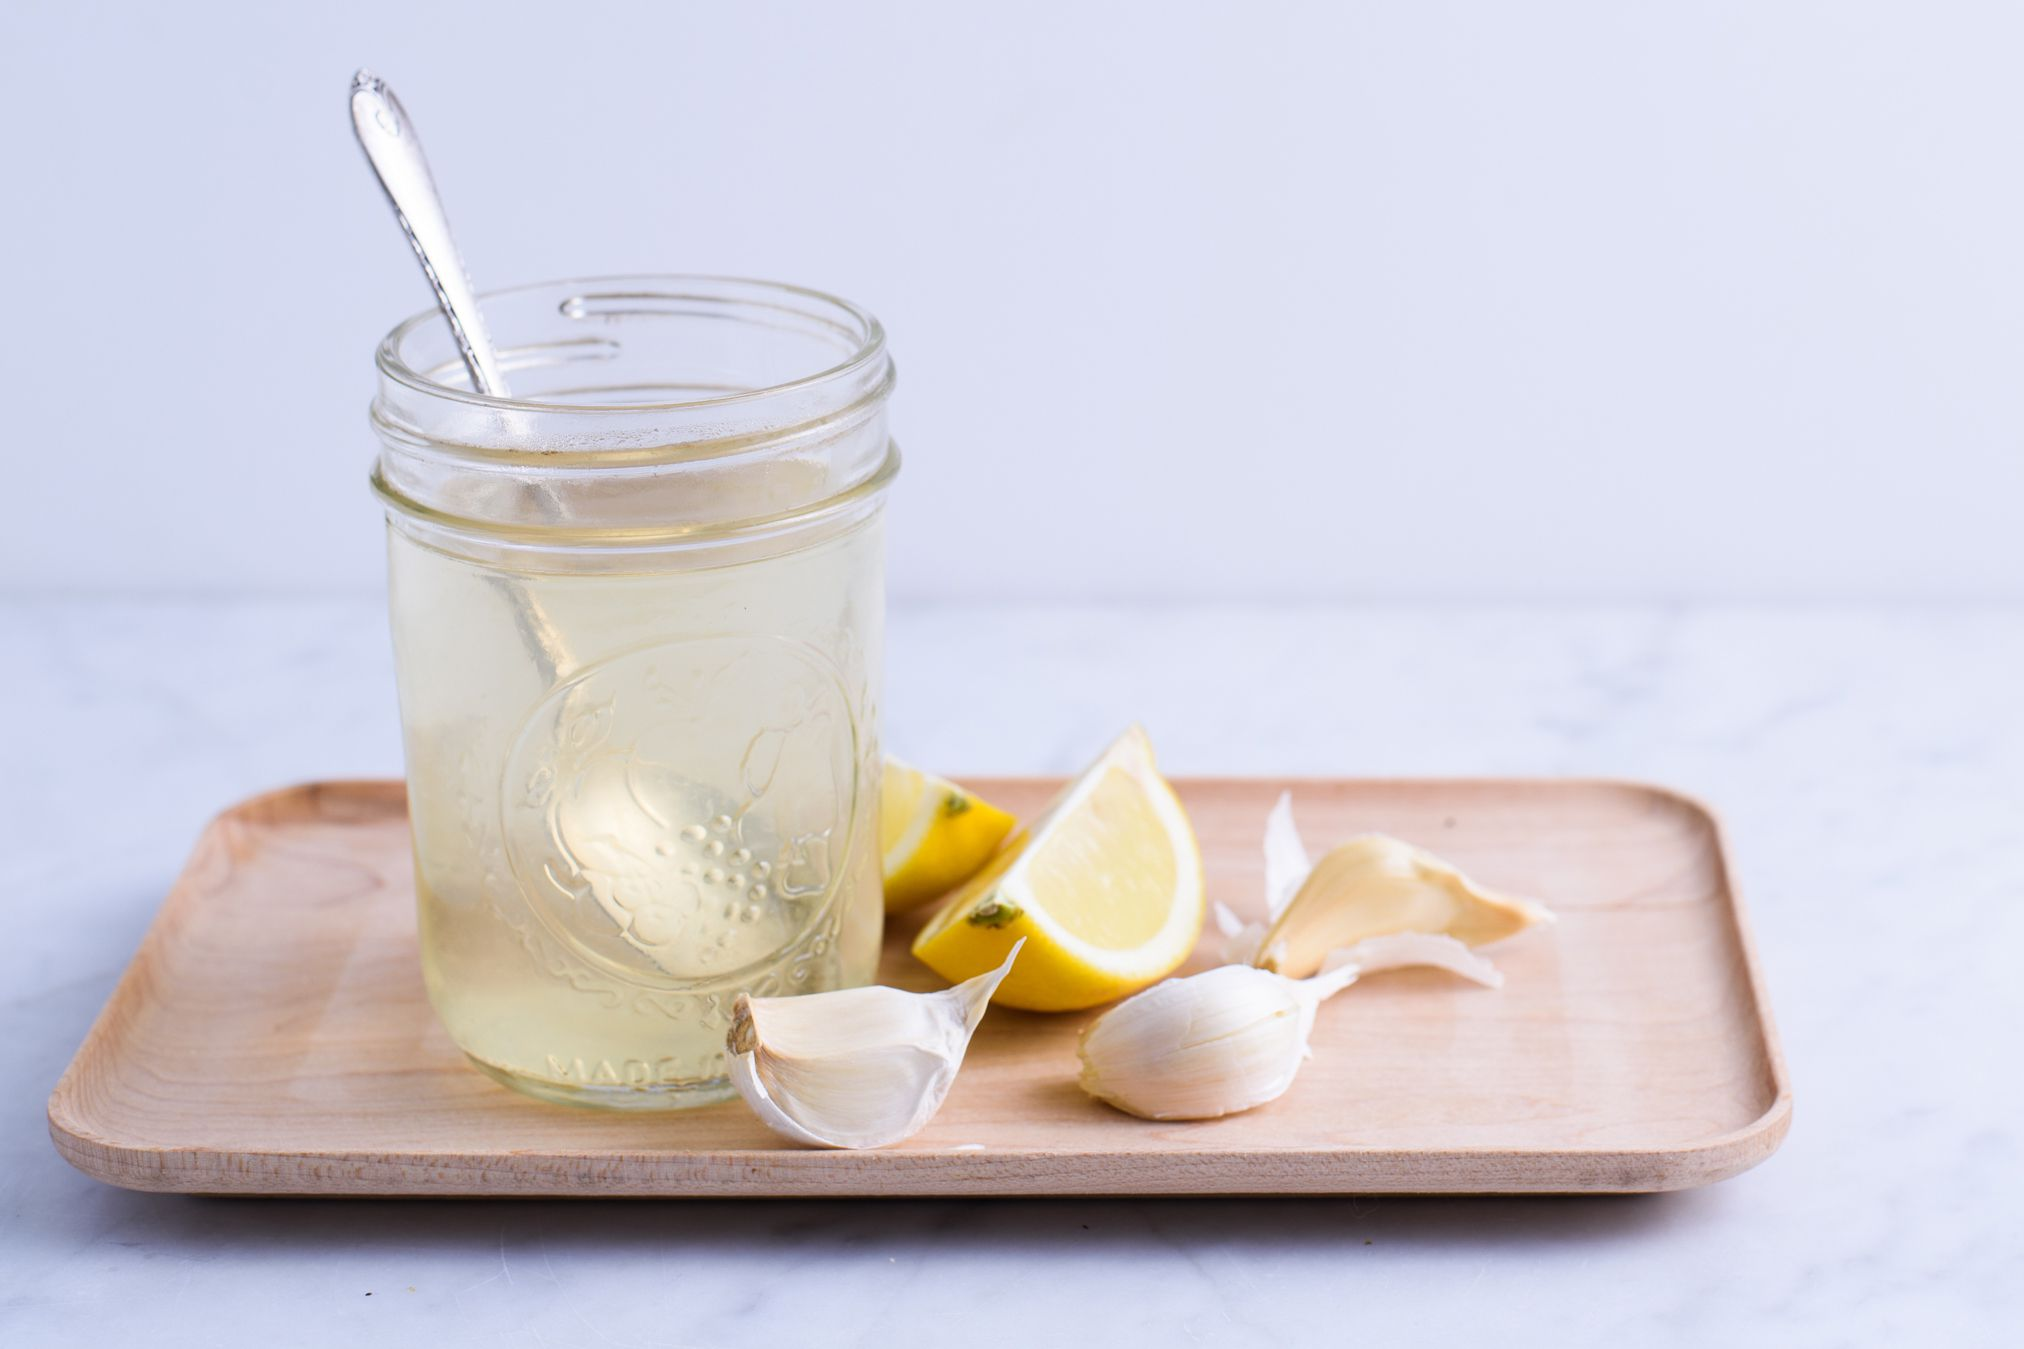 garlic tea benefits and side effects